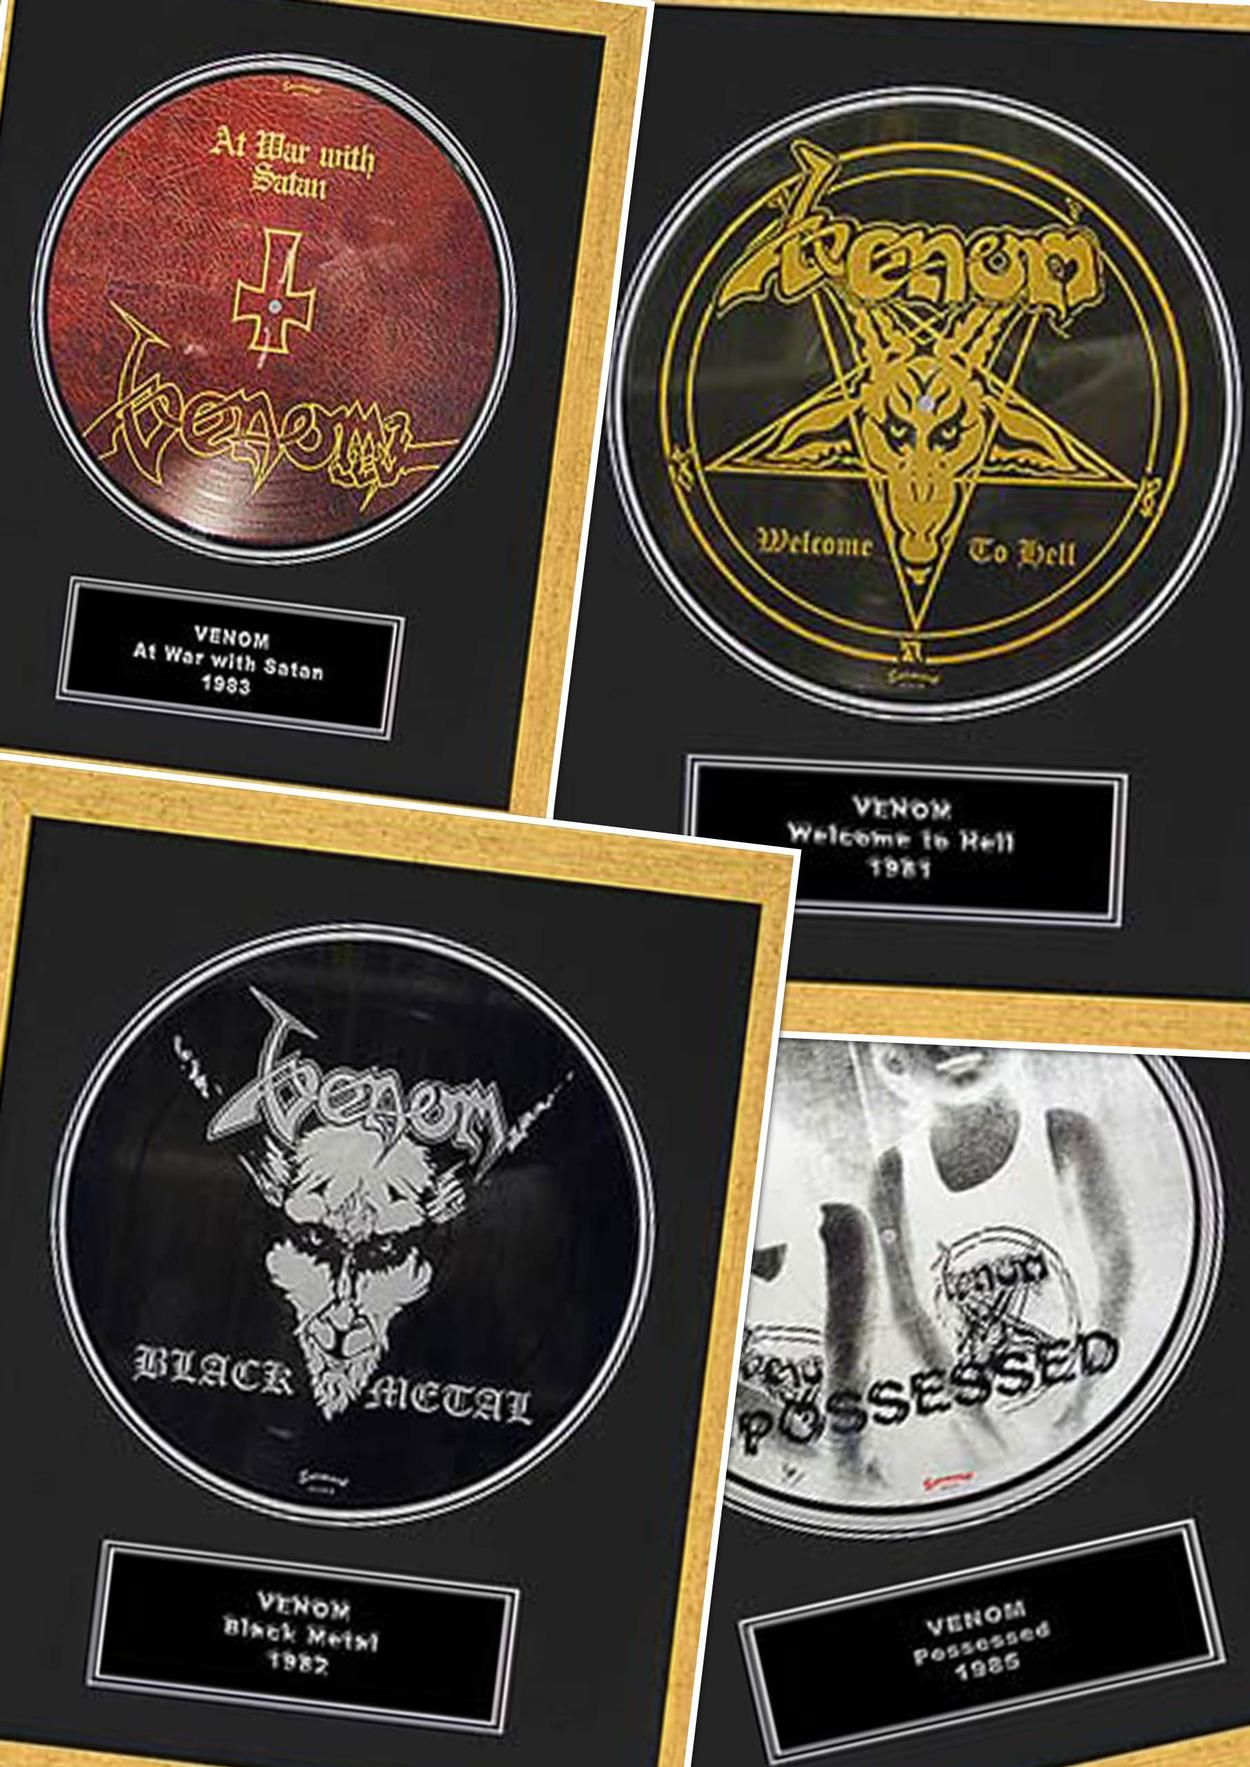 venom black metal collection homepage framed records